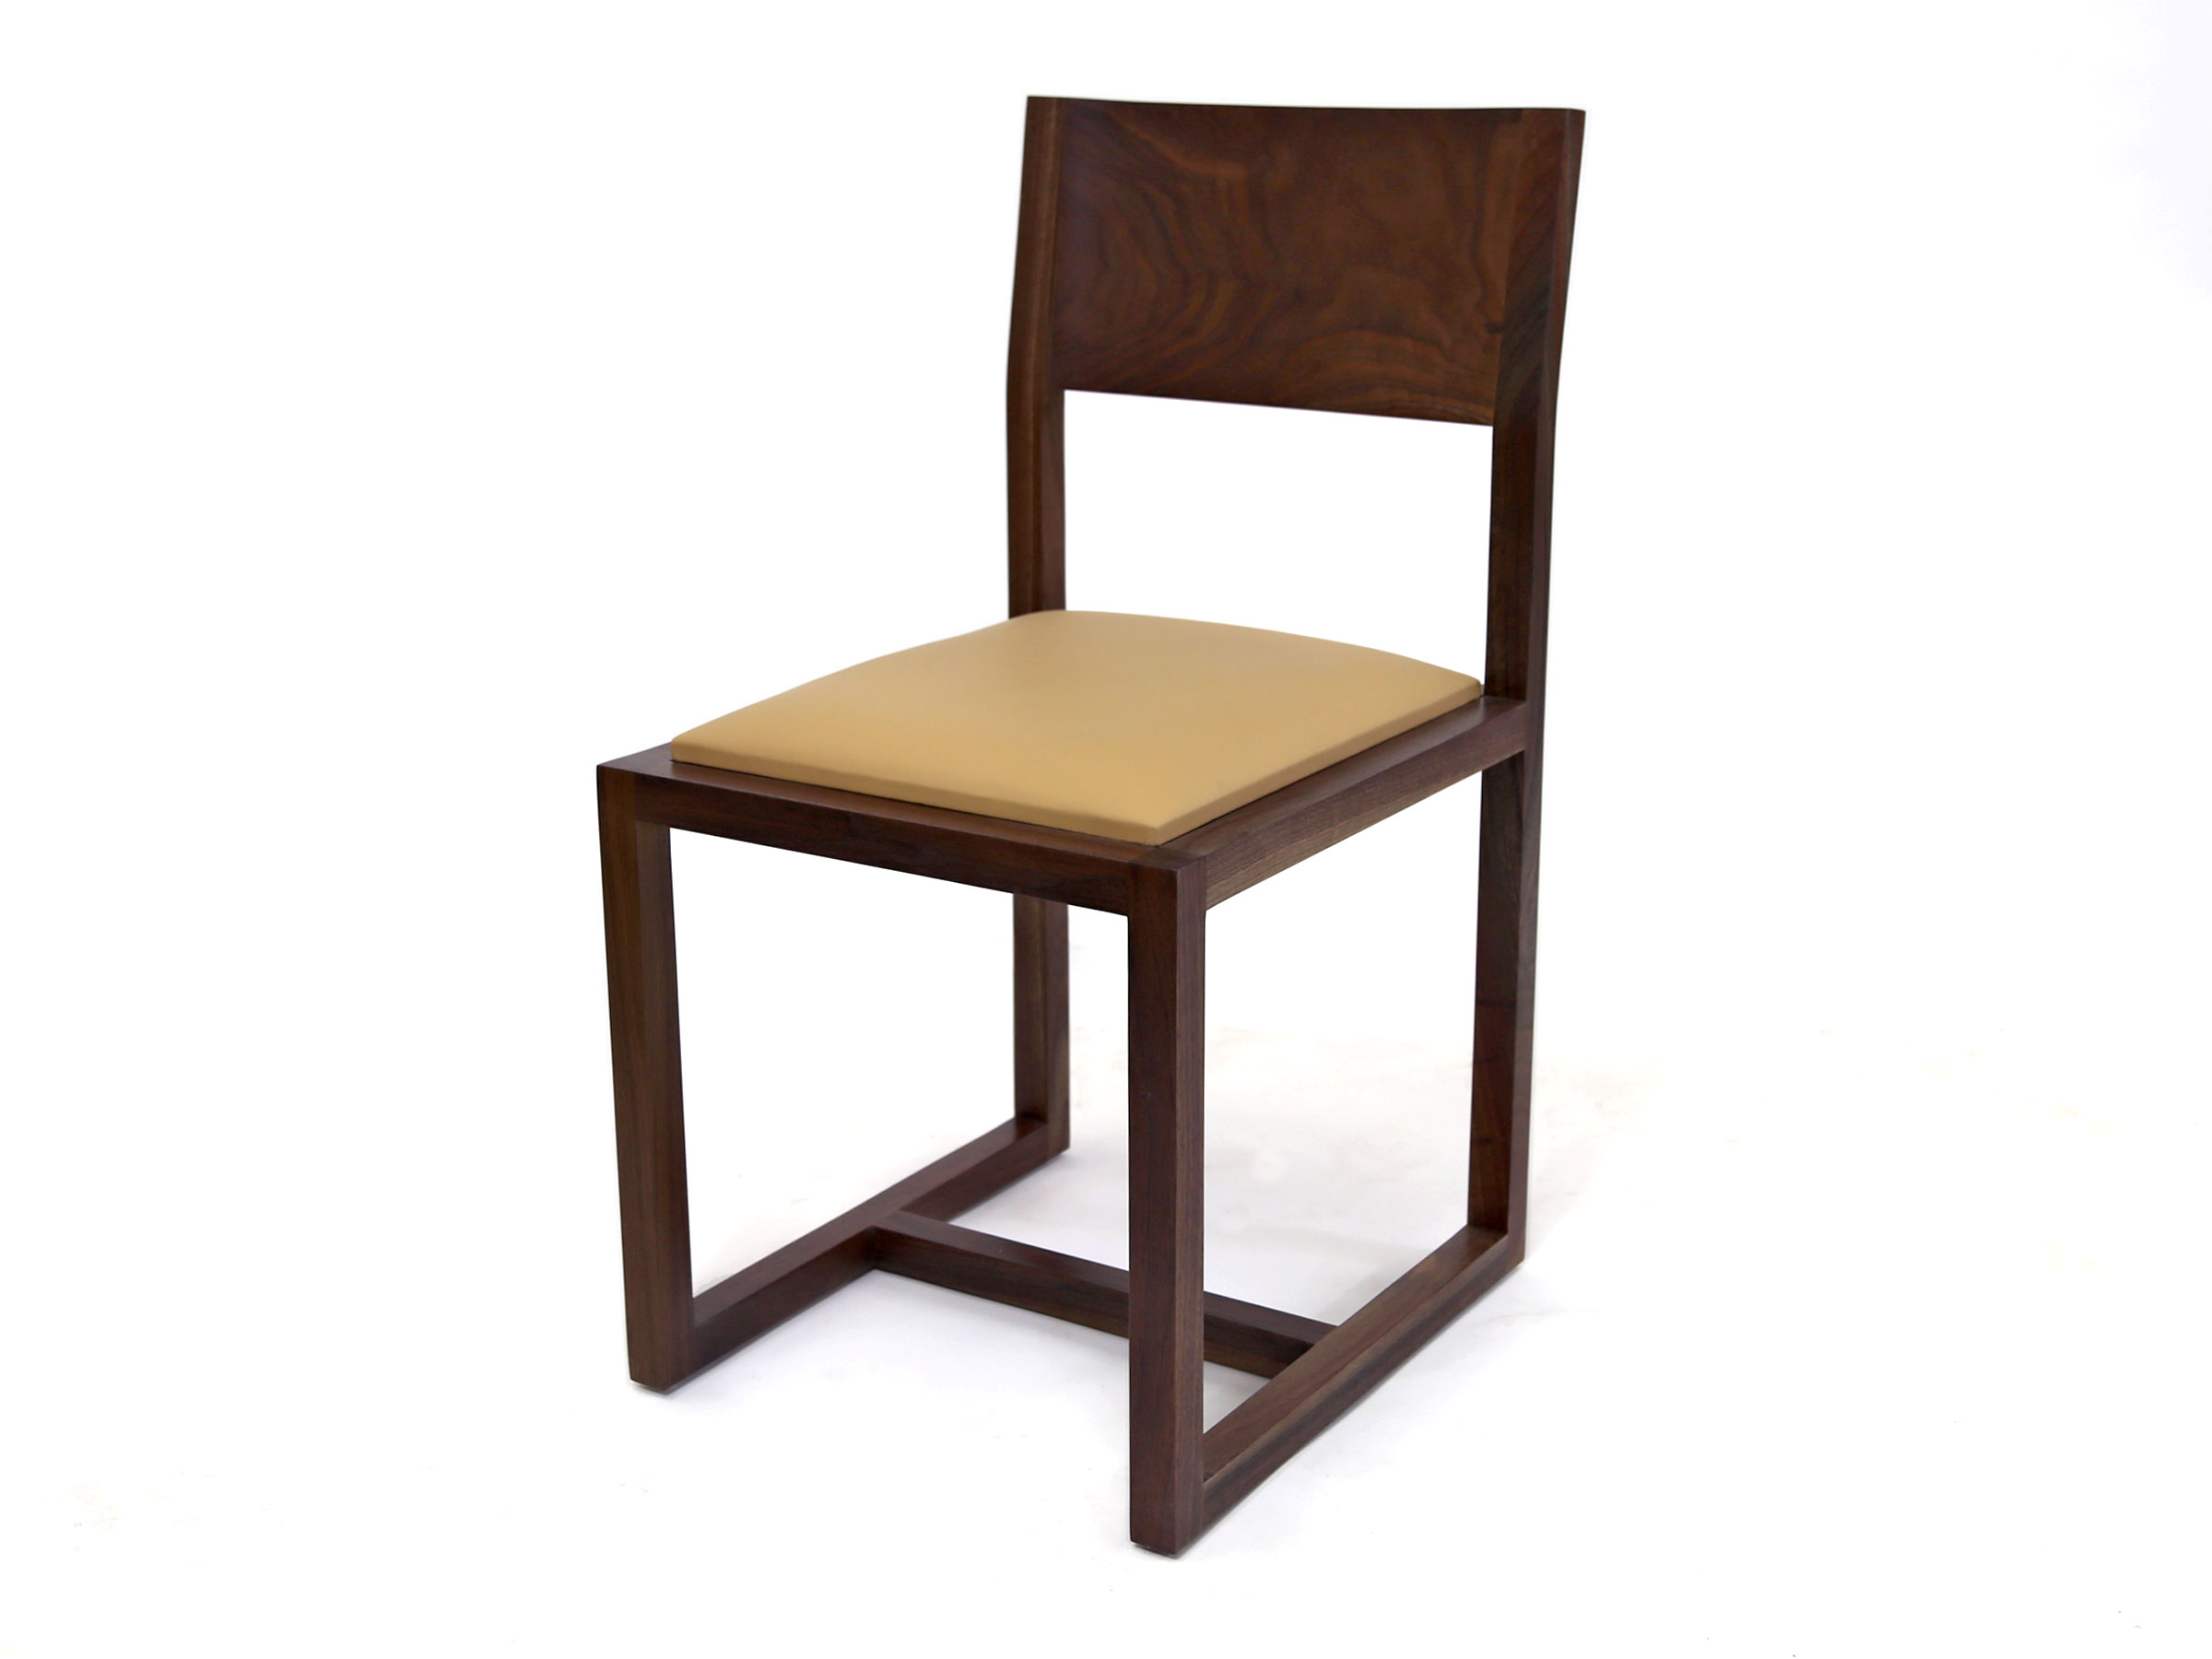 SHIMNA St. Lawrence Chairs